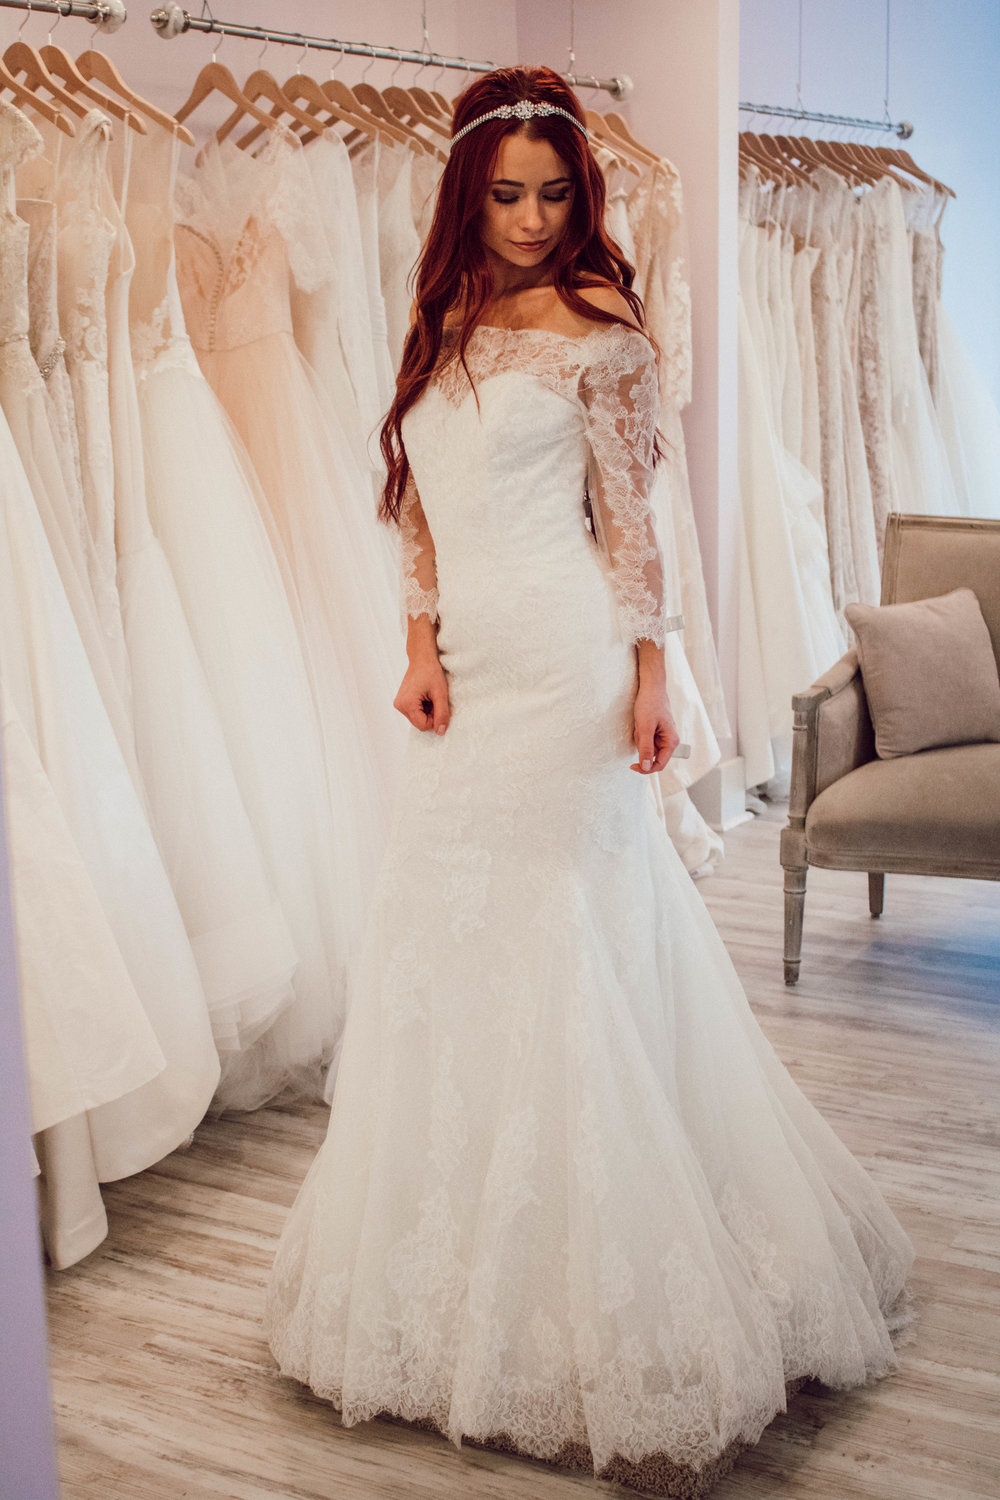 Bridal Gown Shopping with LUXEredux by popular Indianapolis fashion blogger, Trendy in Indy